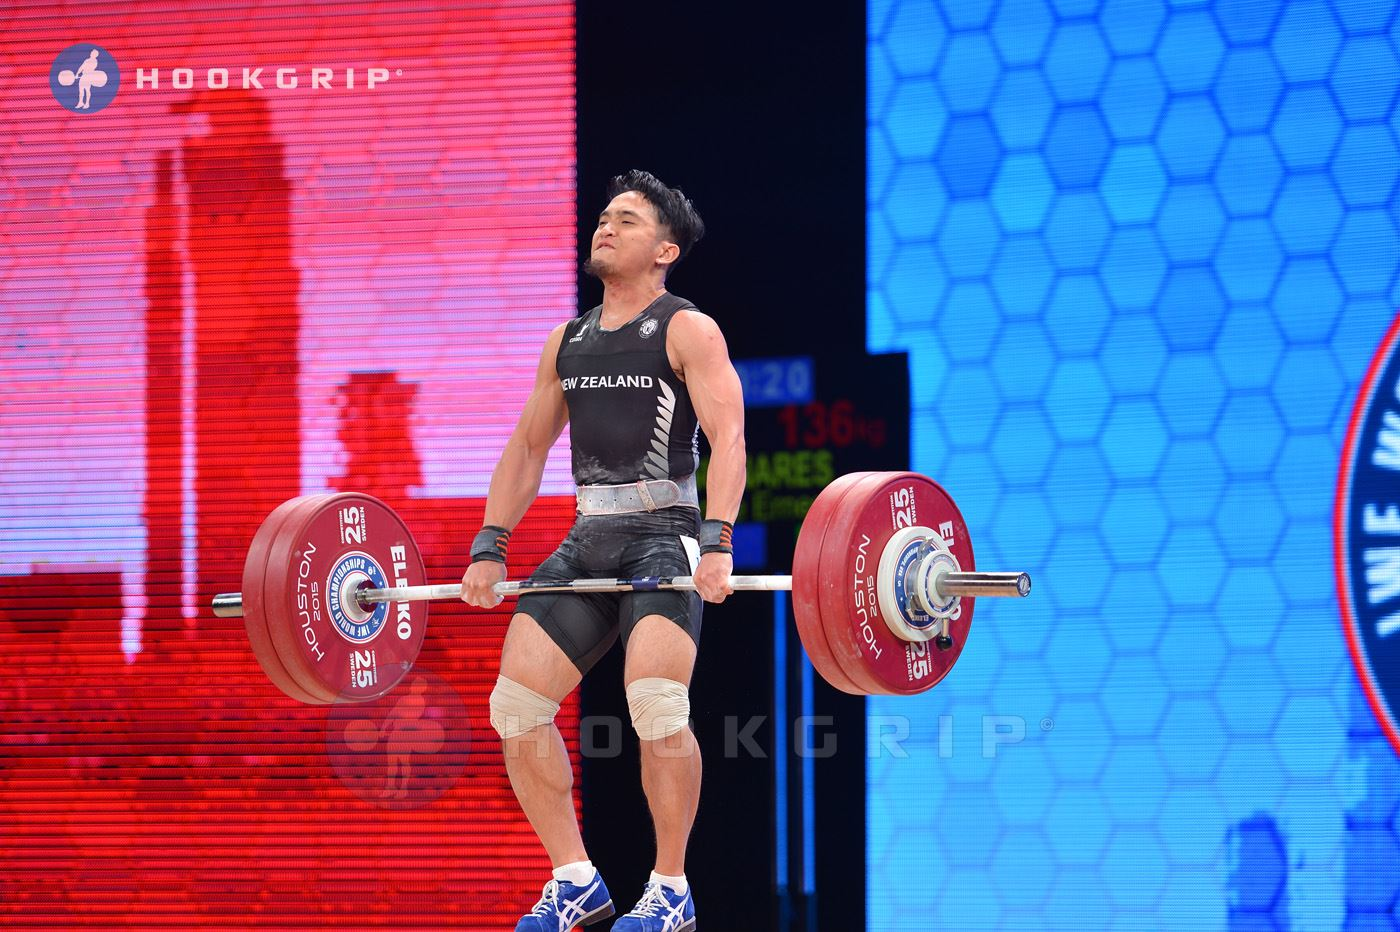 Ianne Guinares World Weightlifting Champs Houston